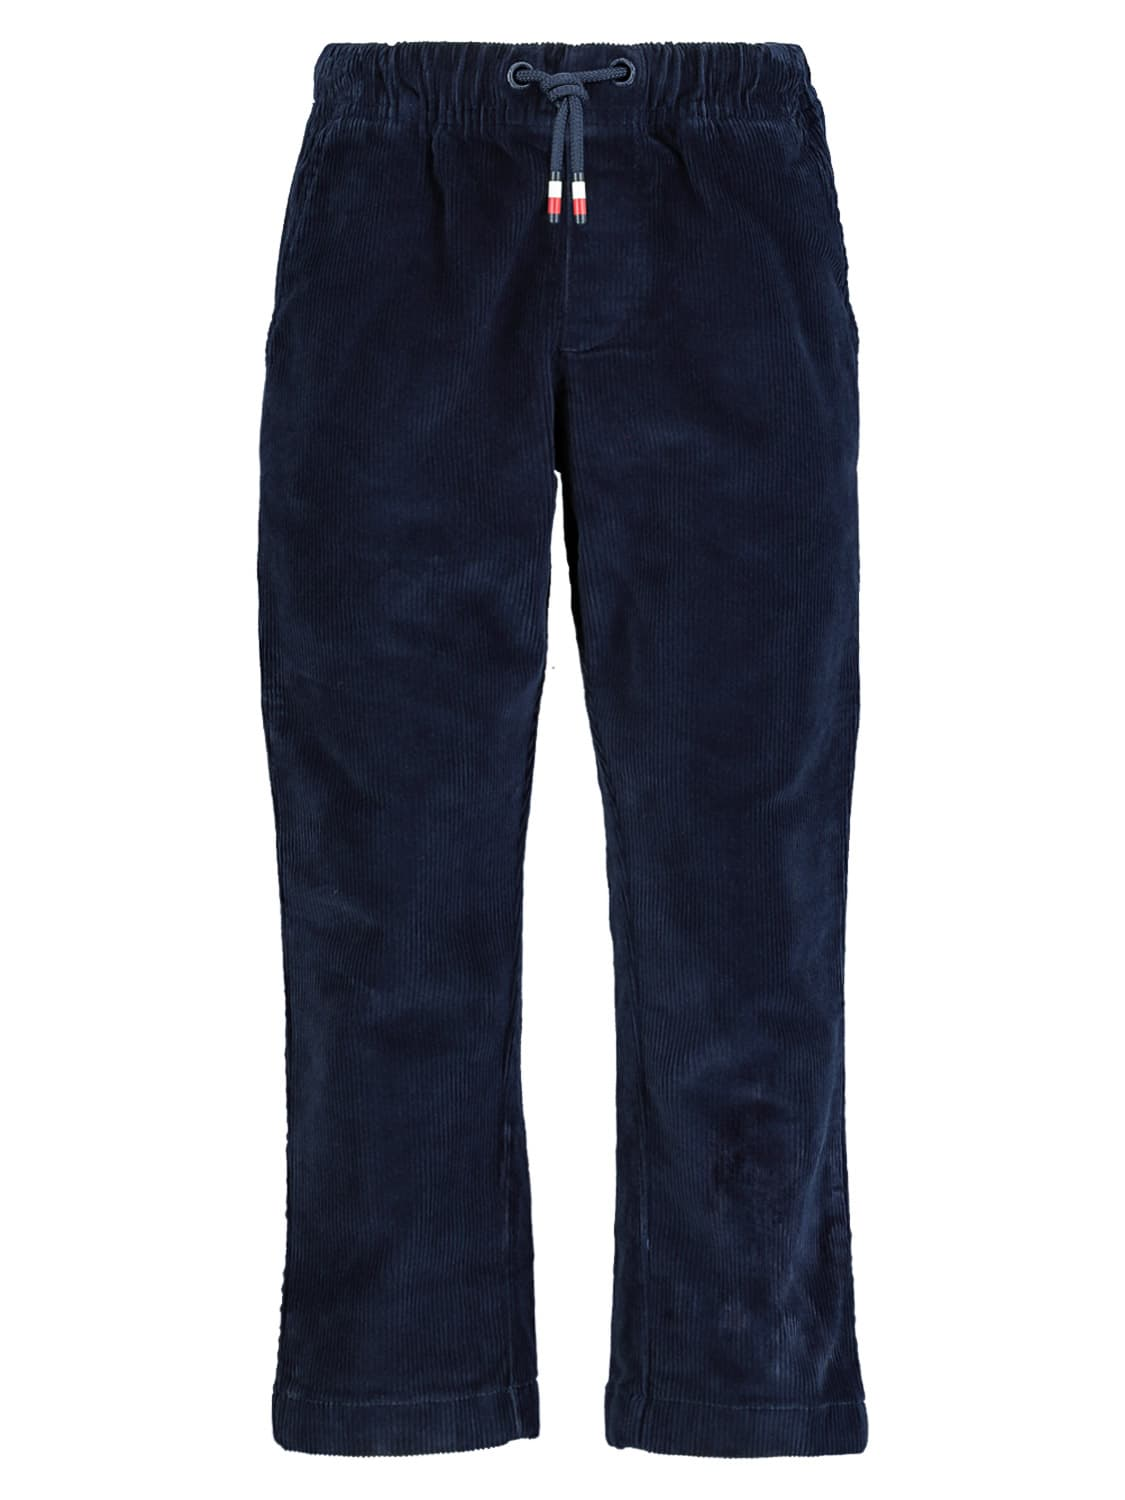 TOMMY HILFIGER KIDS CORDUROY TROUSERS CORDUROY PULL ON FOR BOYS